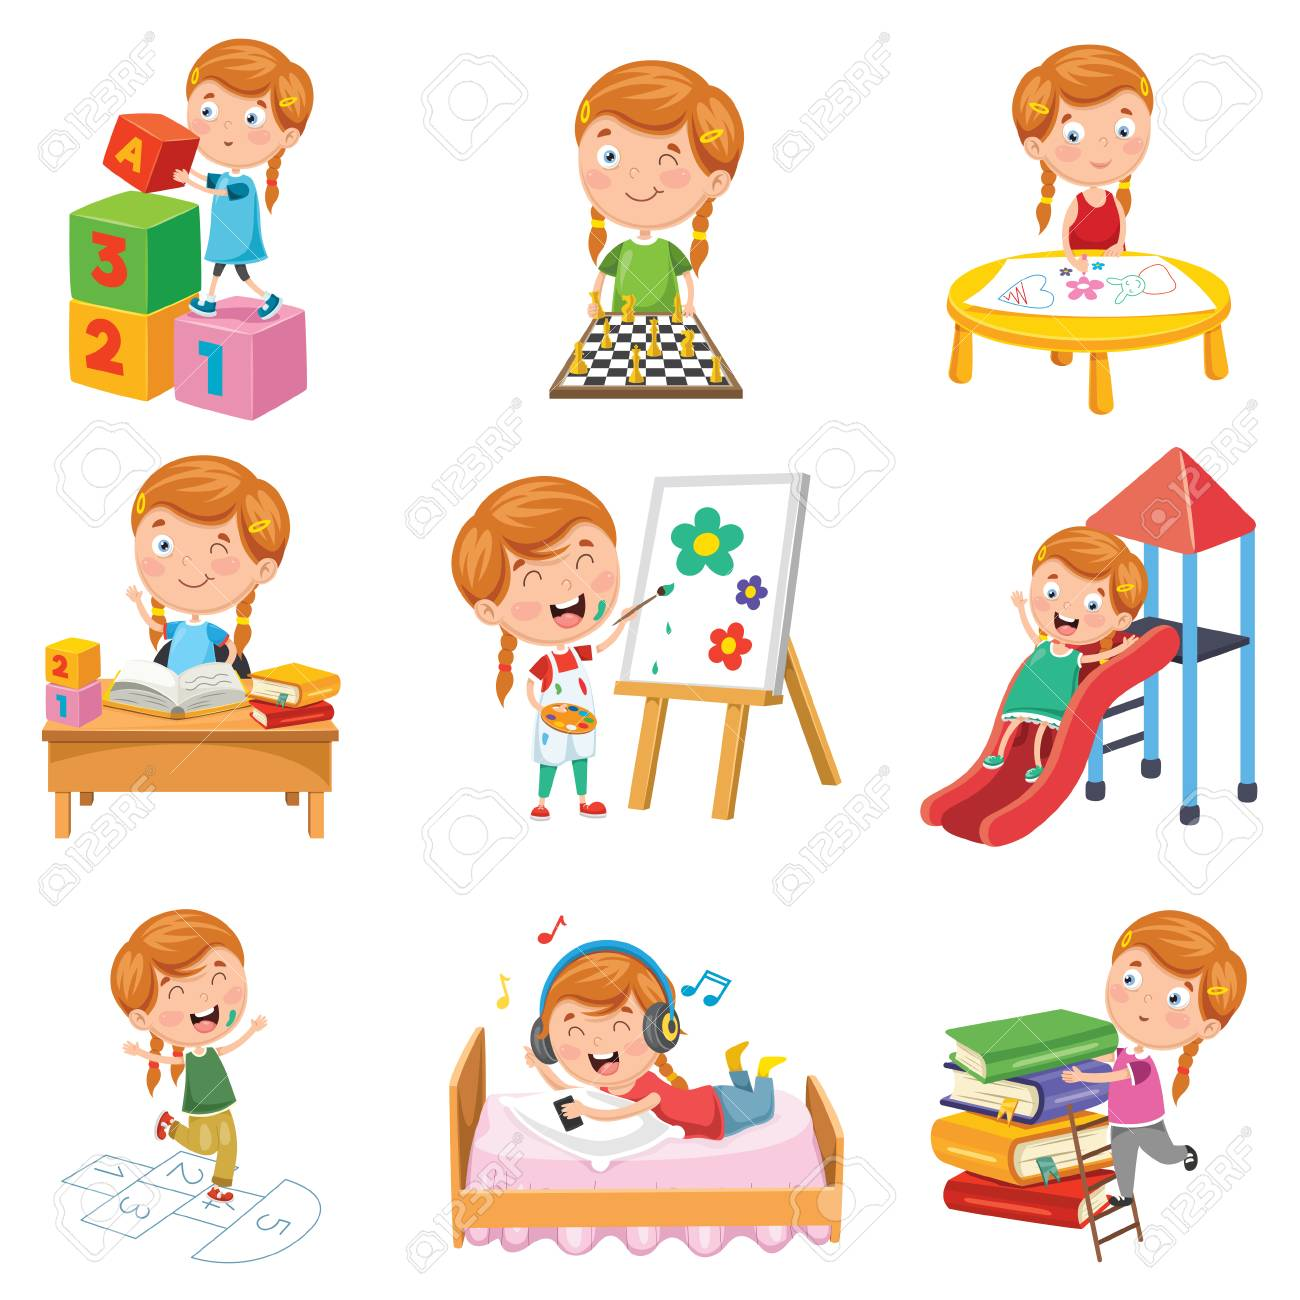 Vector Illustration Of Little Girl Playing - 104078097